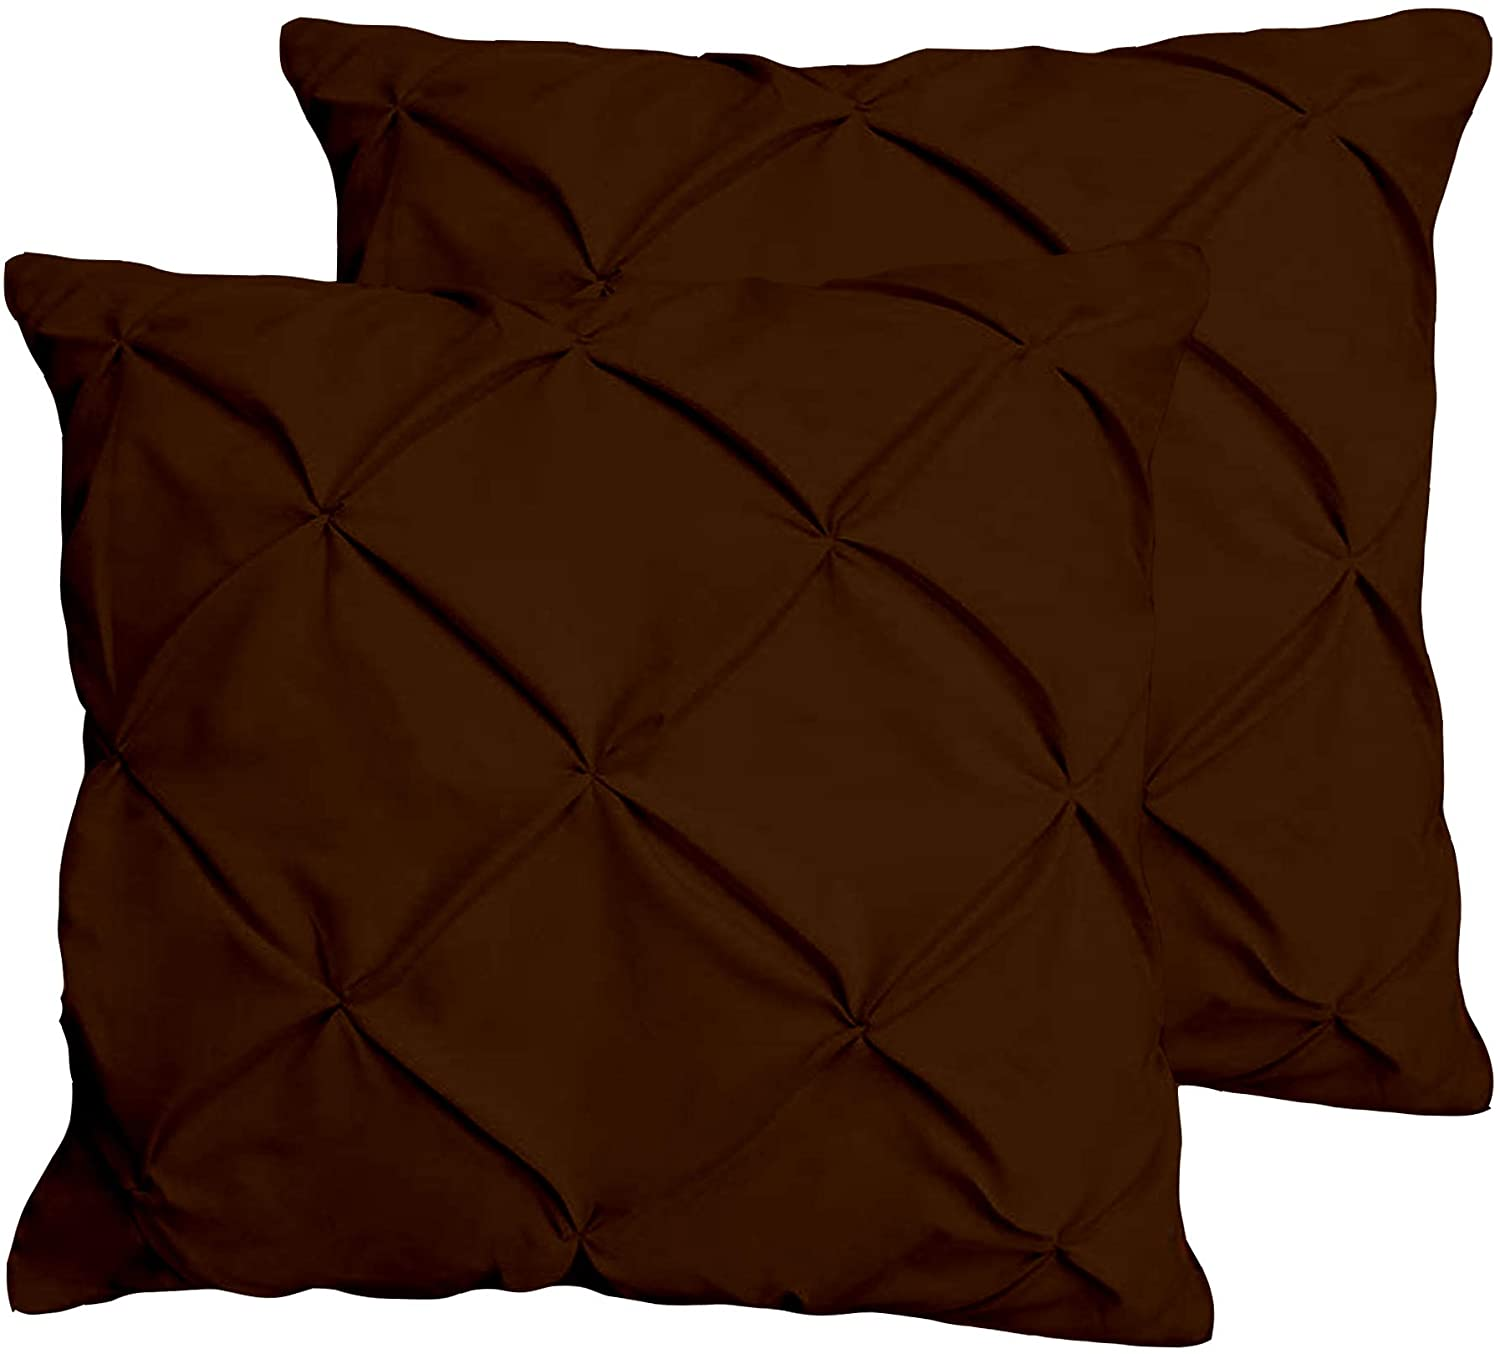 JBD LINEN Pinch Pleated Pintuck Design Big Euro Pillows Sized 28 x 28 inch Cushion Cover Set of 2 Piece, 800 Thread Count 100% Egyptian Cotton Brown Solid